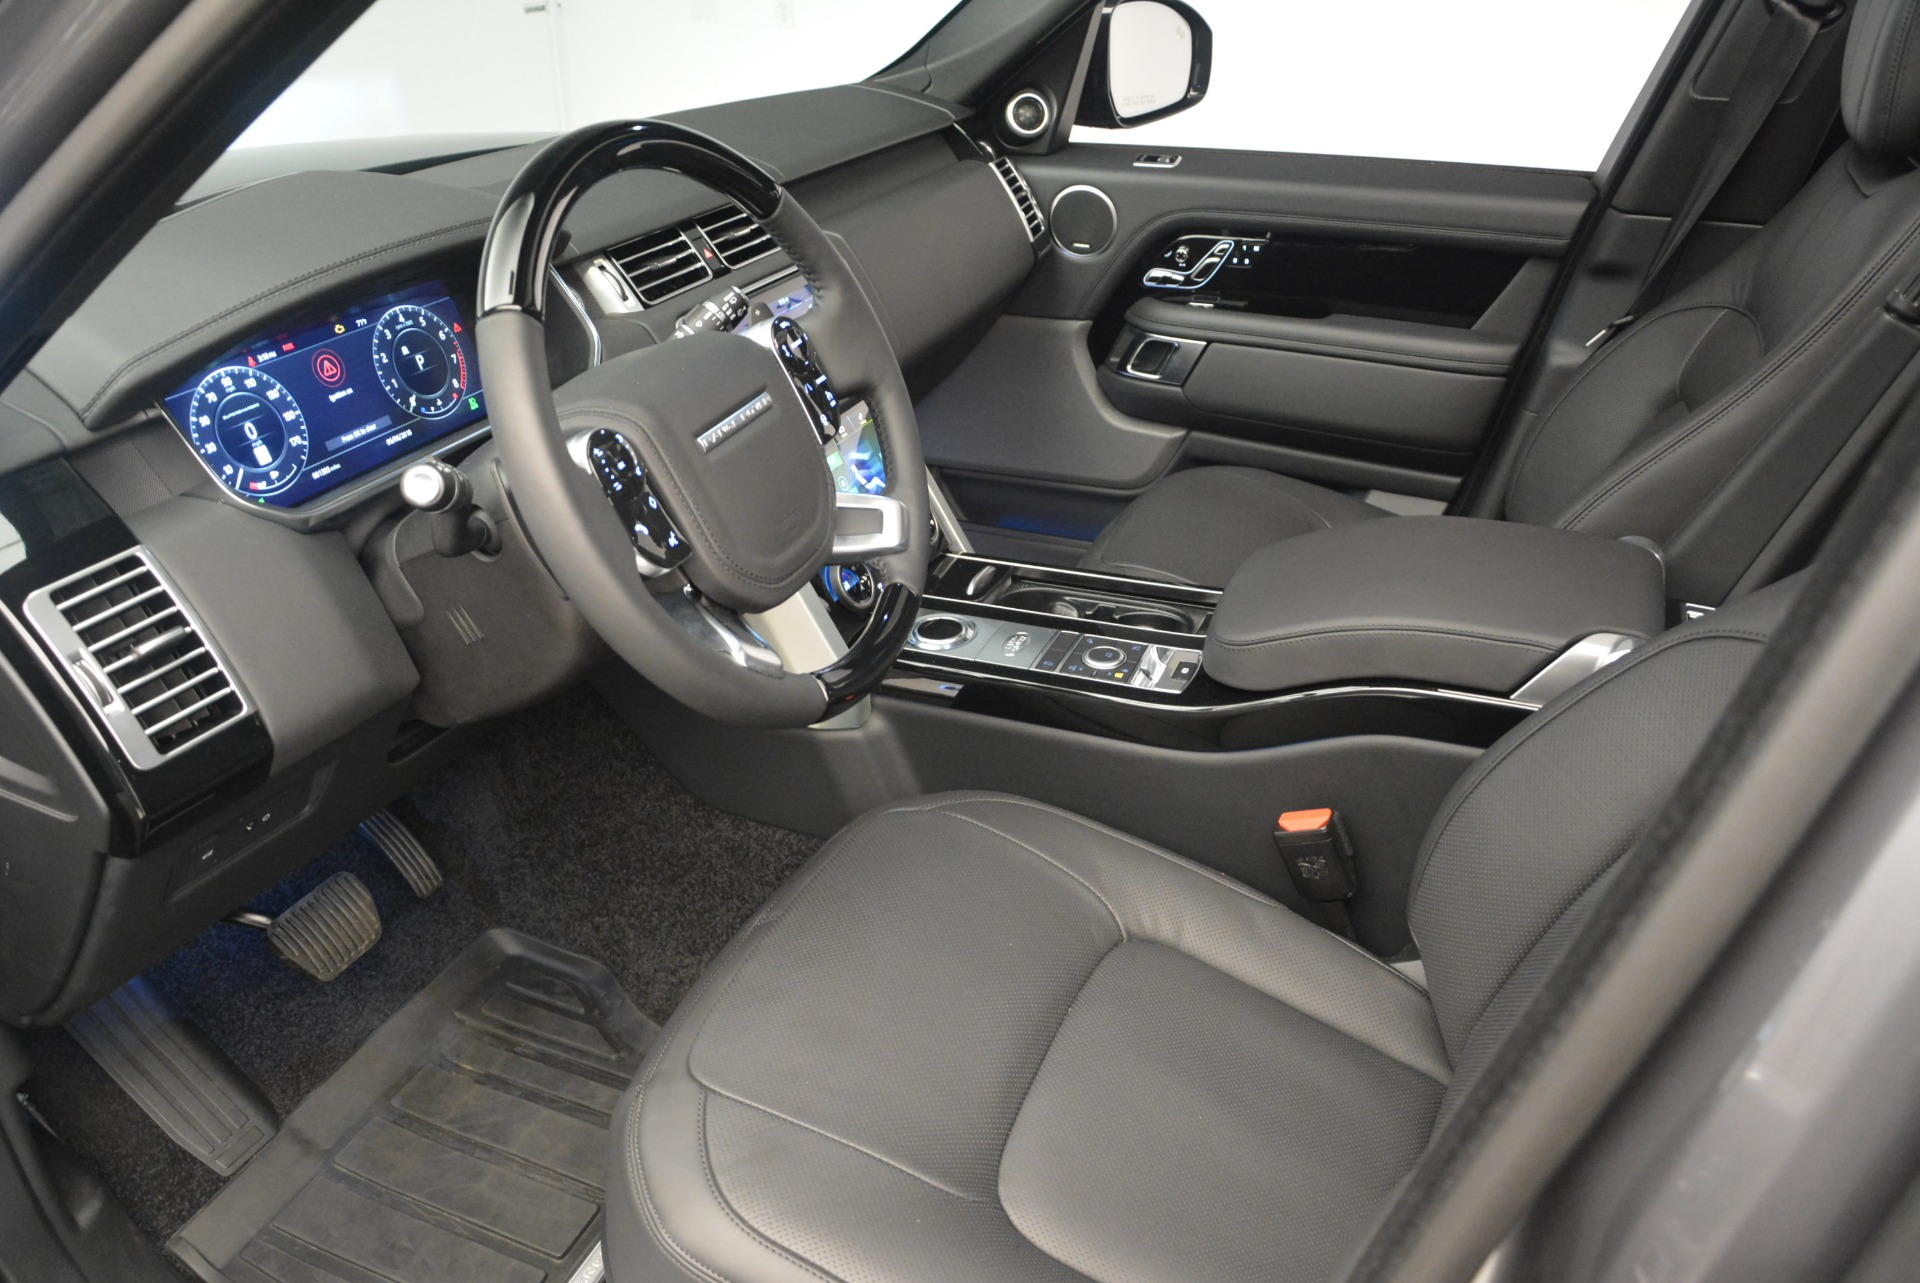 Used 2018 Land Rover Range Rover Supercharged LWB For Sale In Westport, CT 2291_p17